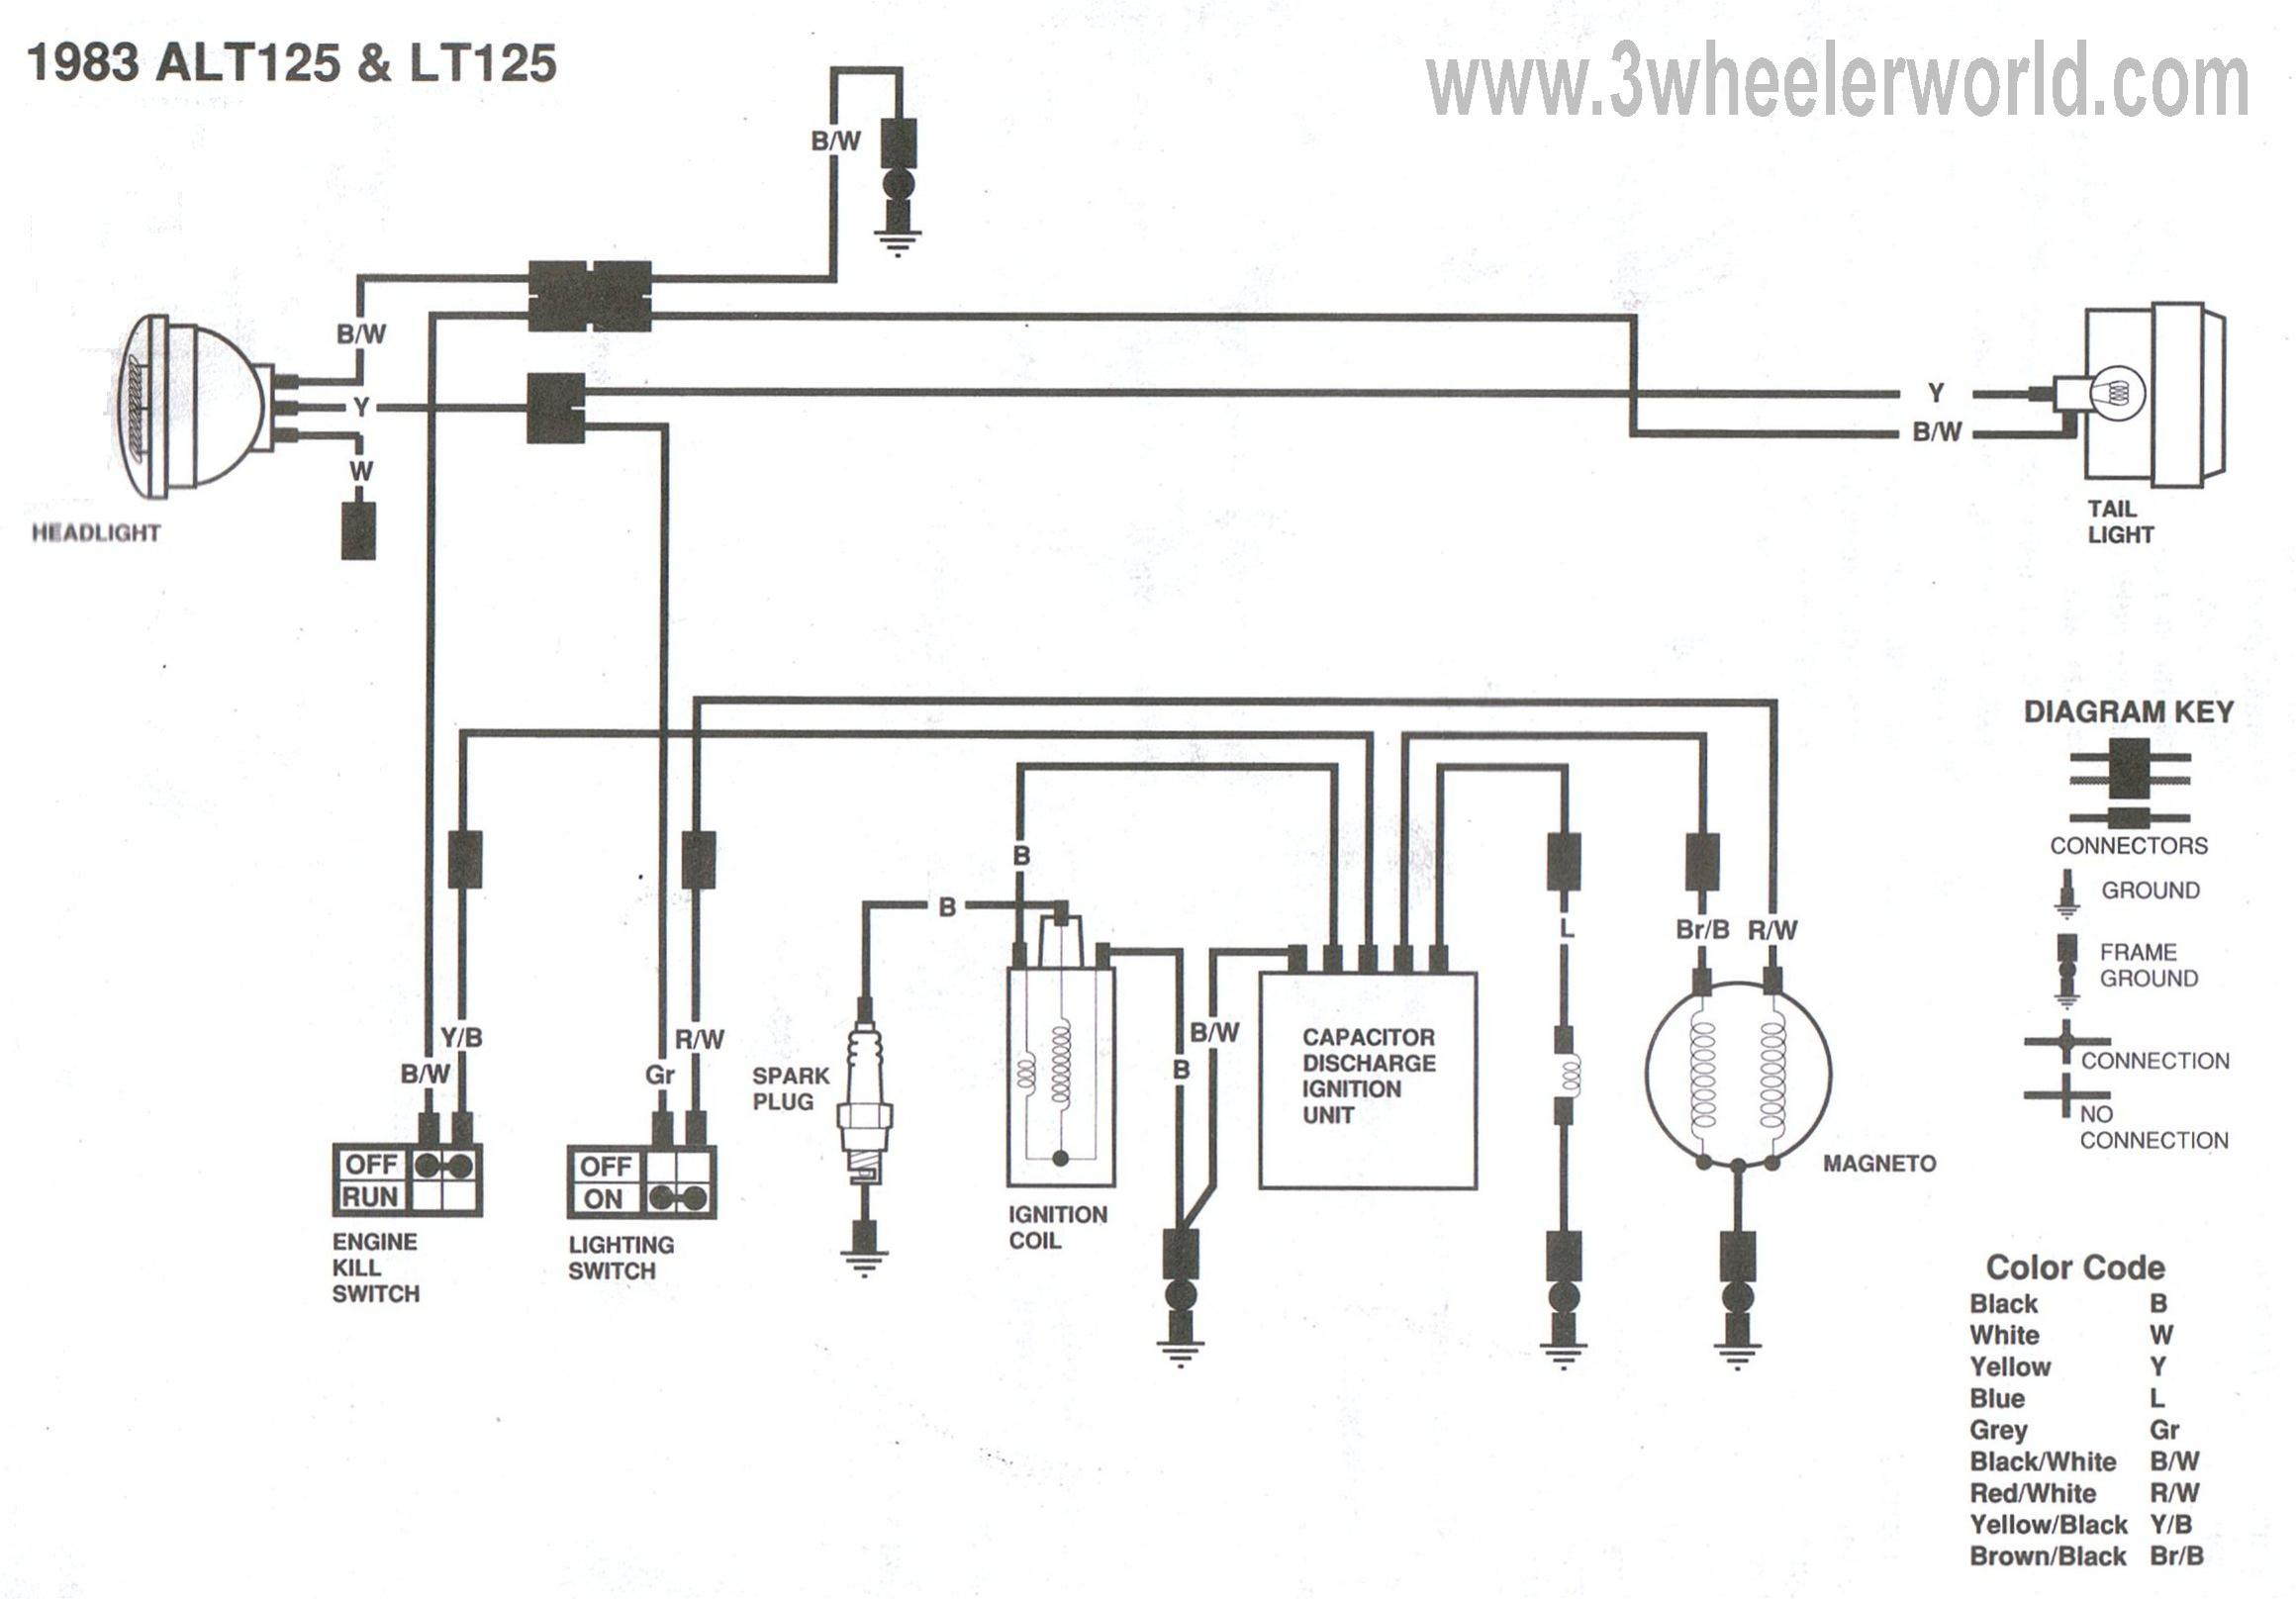 article preview  wiring diagrams alt125 & lt125 1983